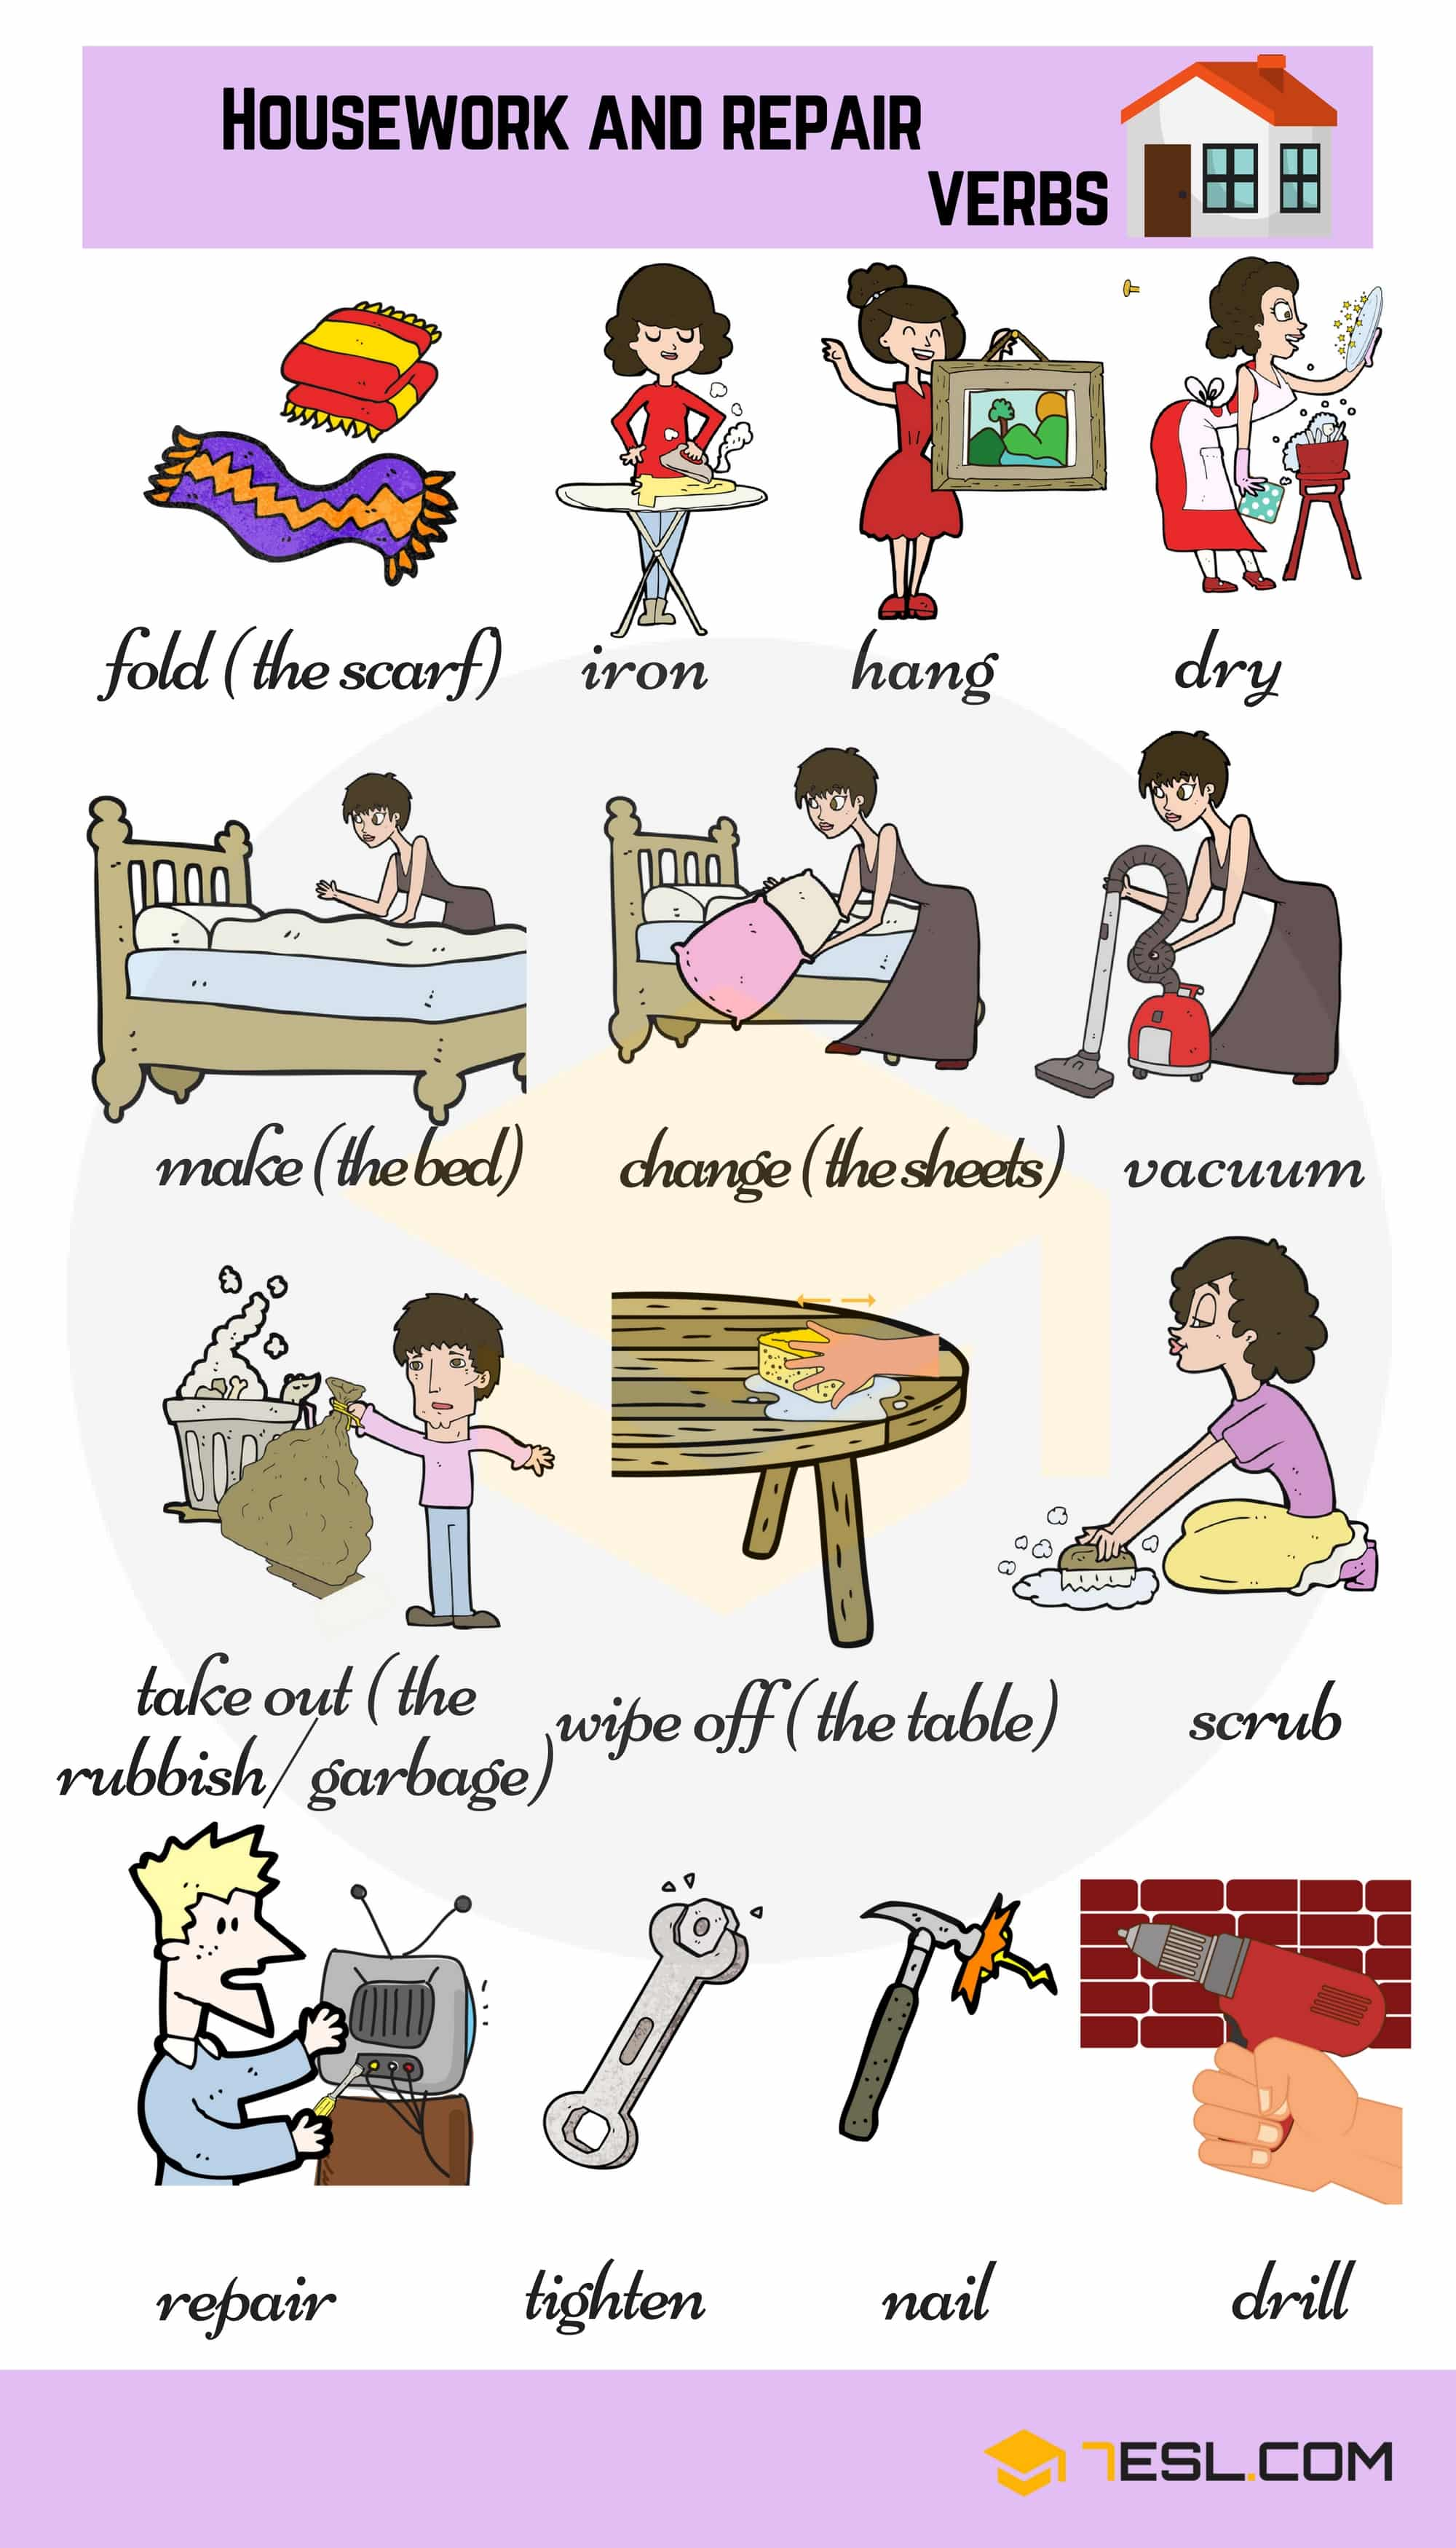 Housework and Repair Verbs | Image